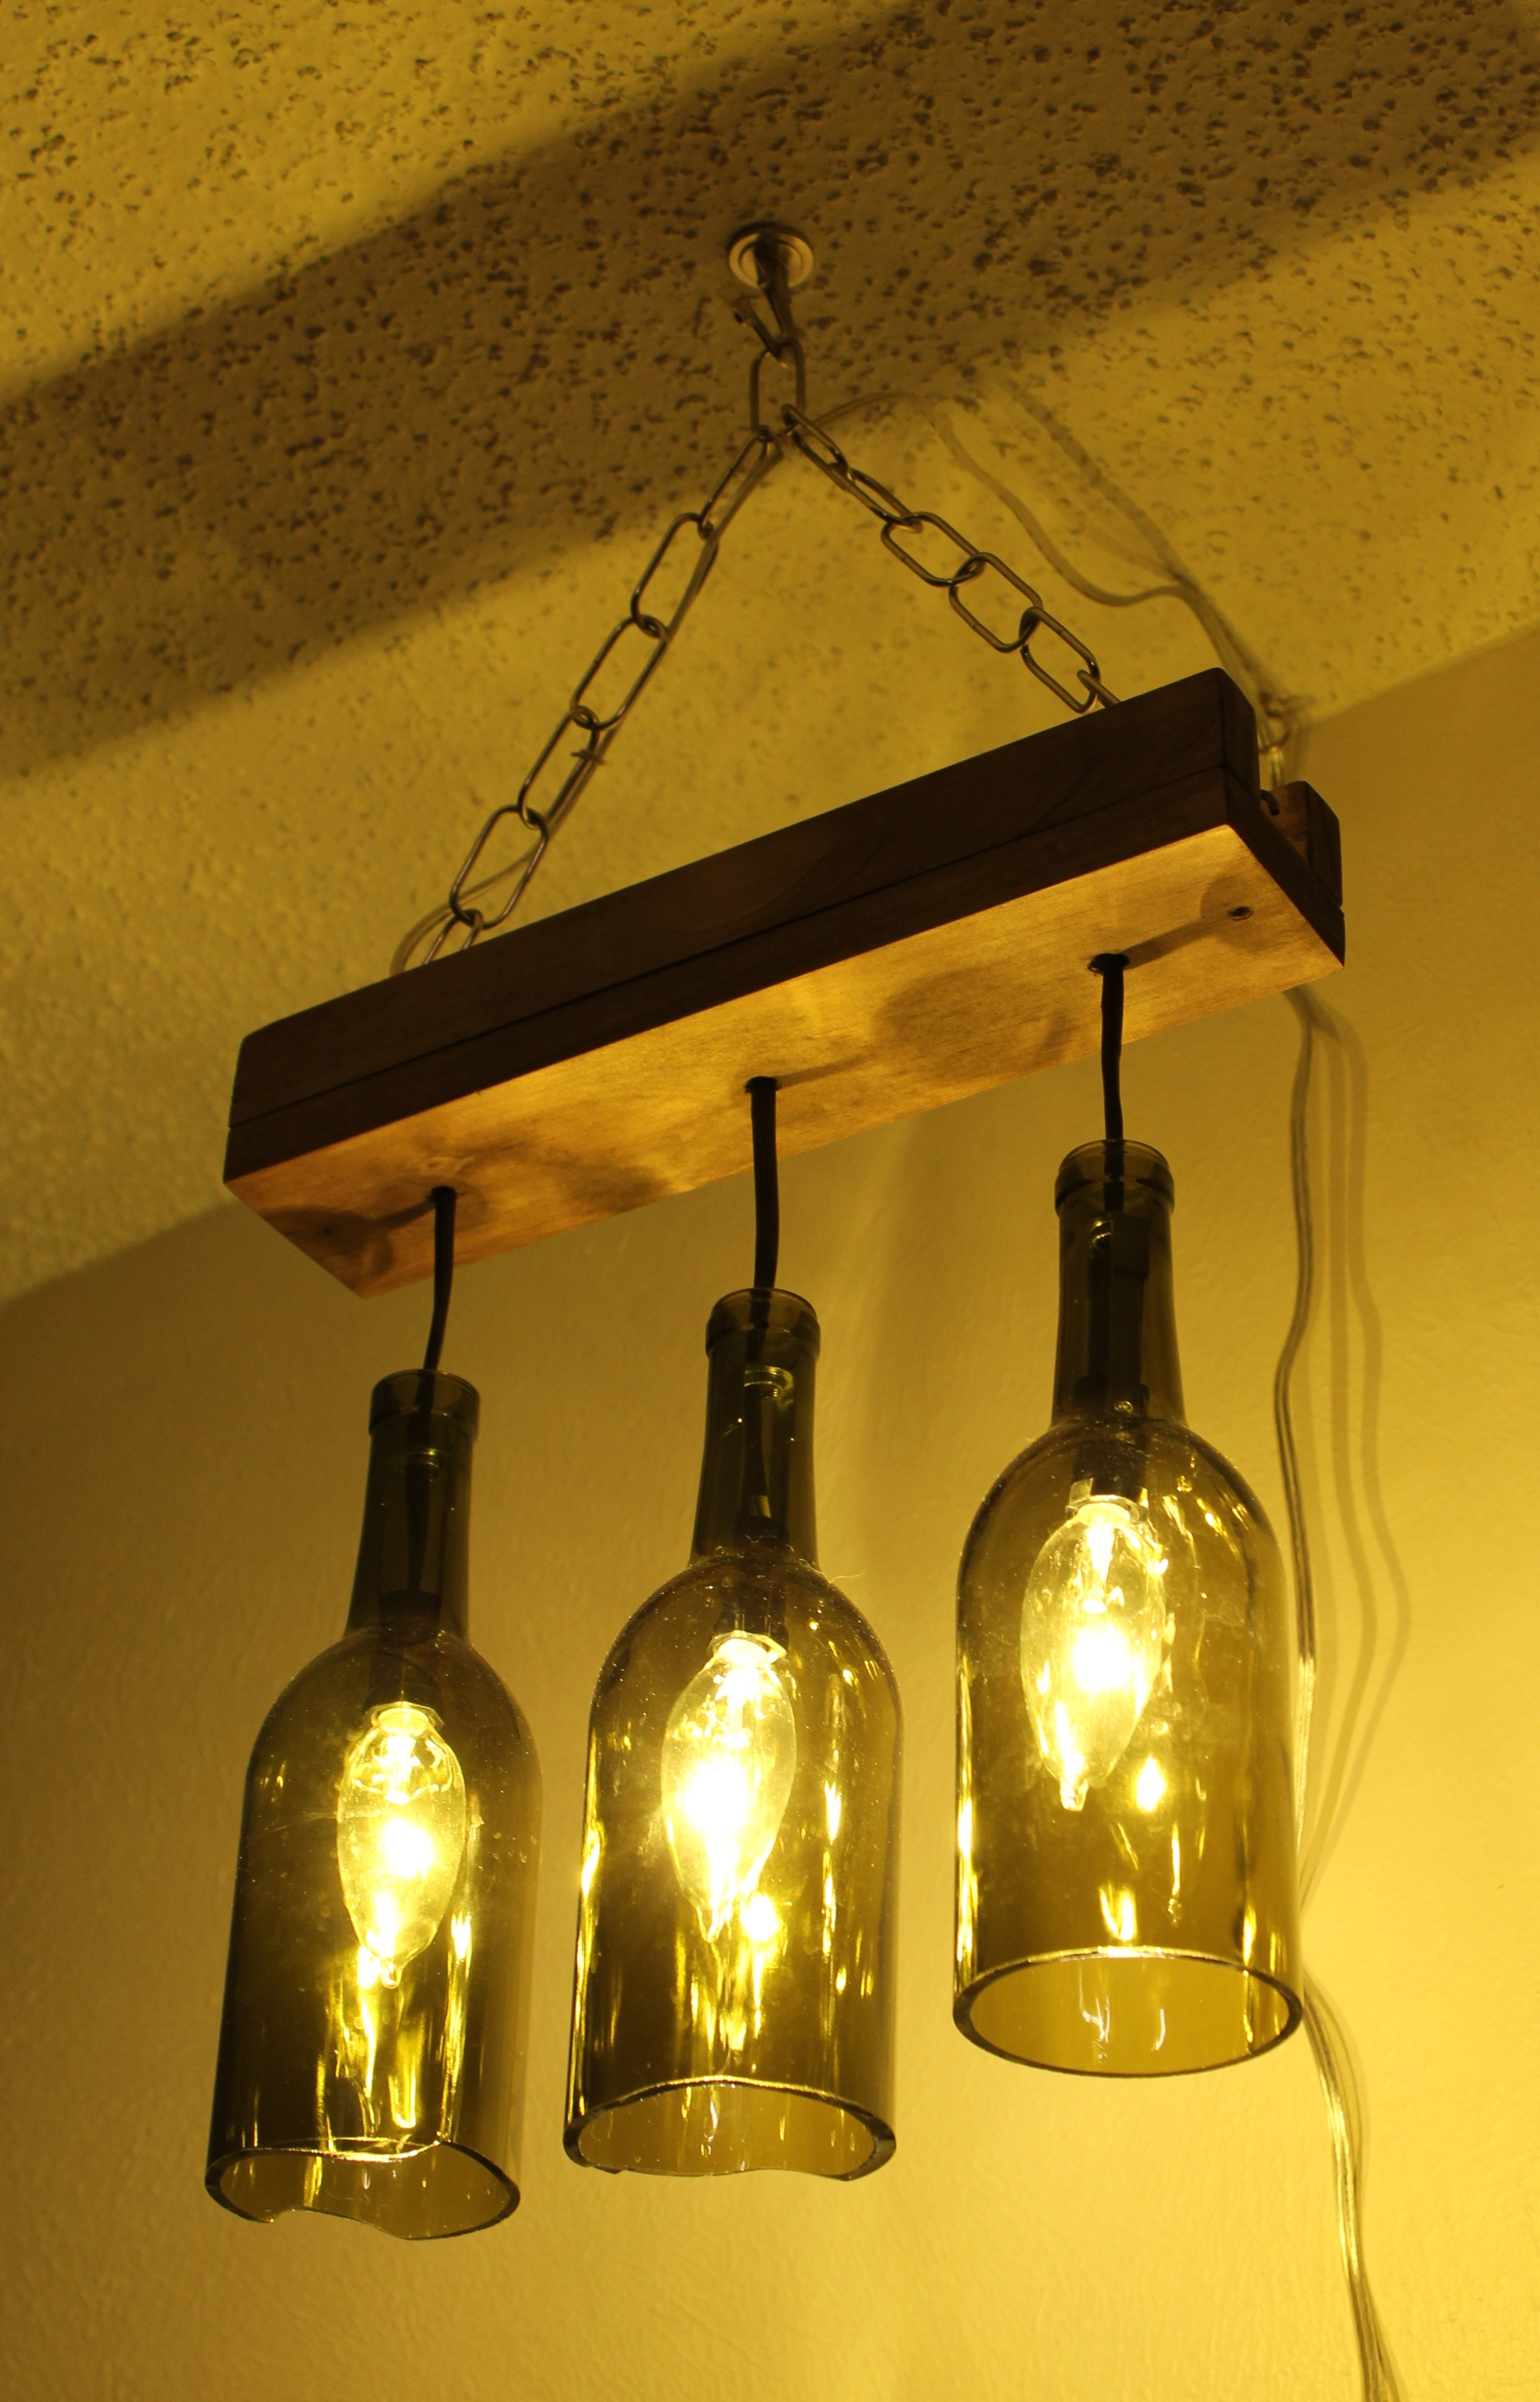 Outdoor Hanging Bottle Lights With Regard To Most Recent Light: Wine Bottle Lights Hanging (View 18 of 20)